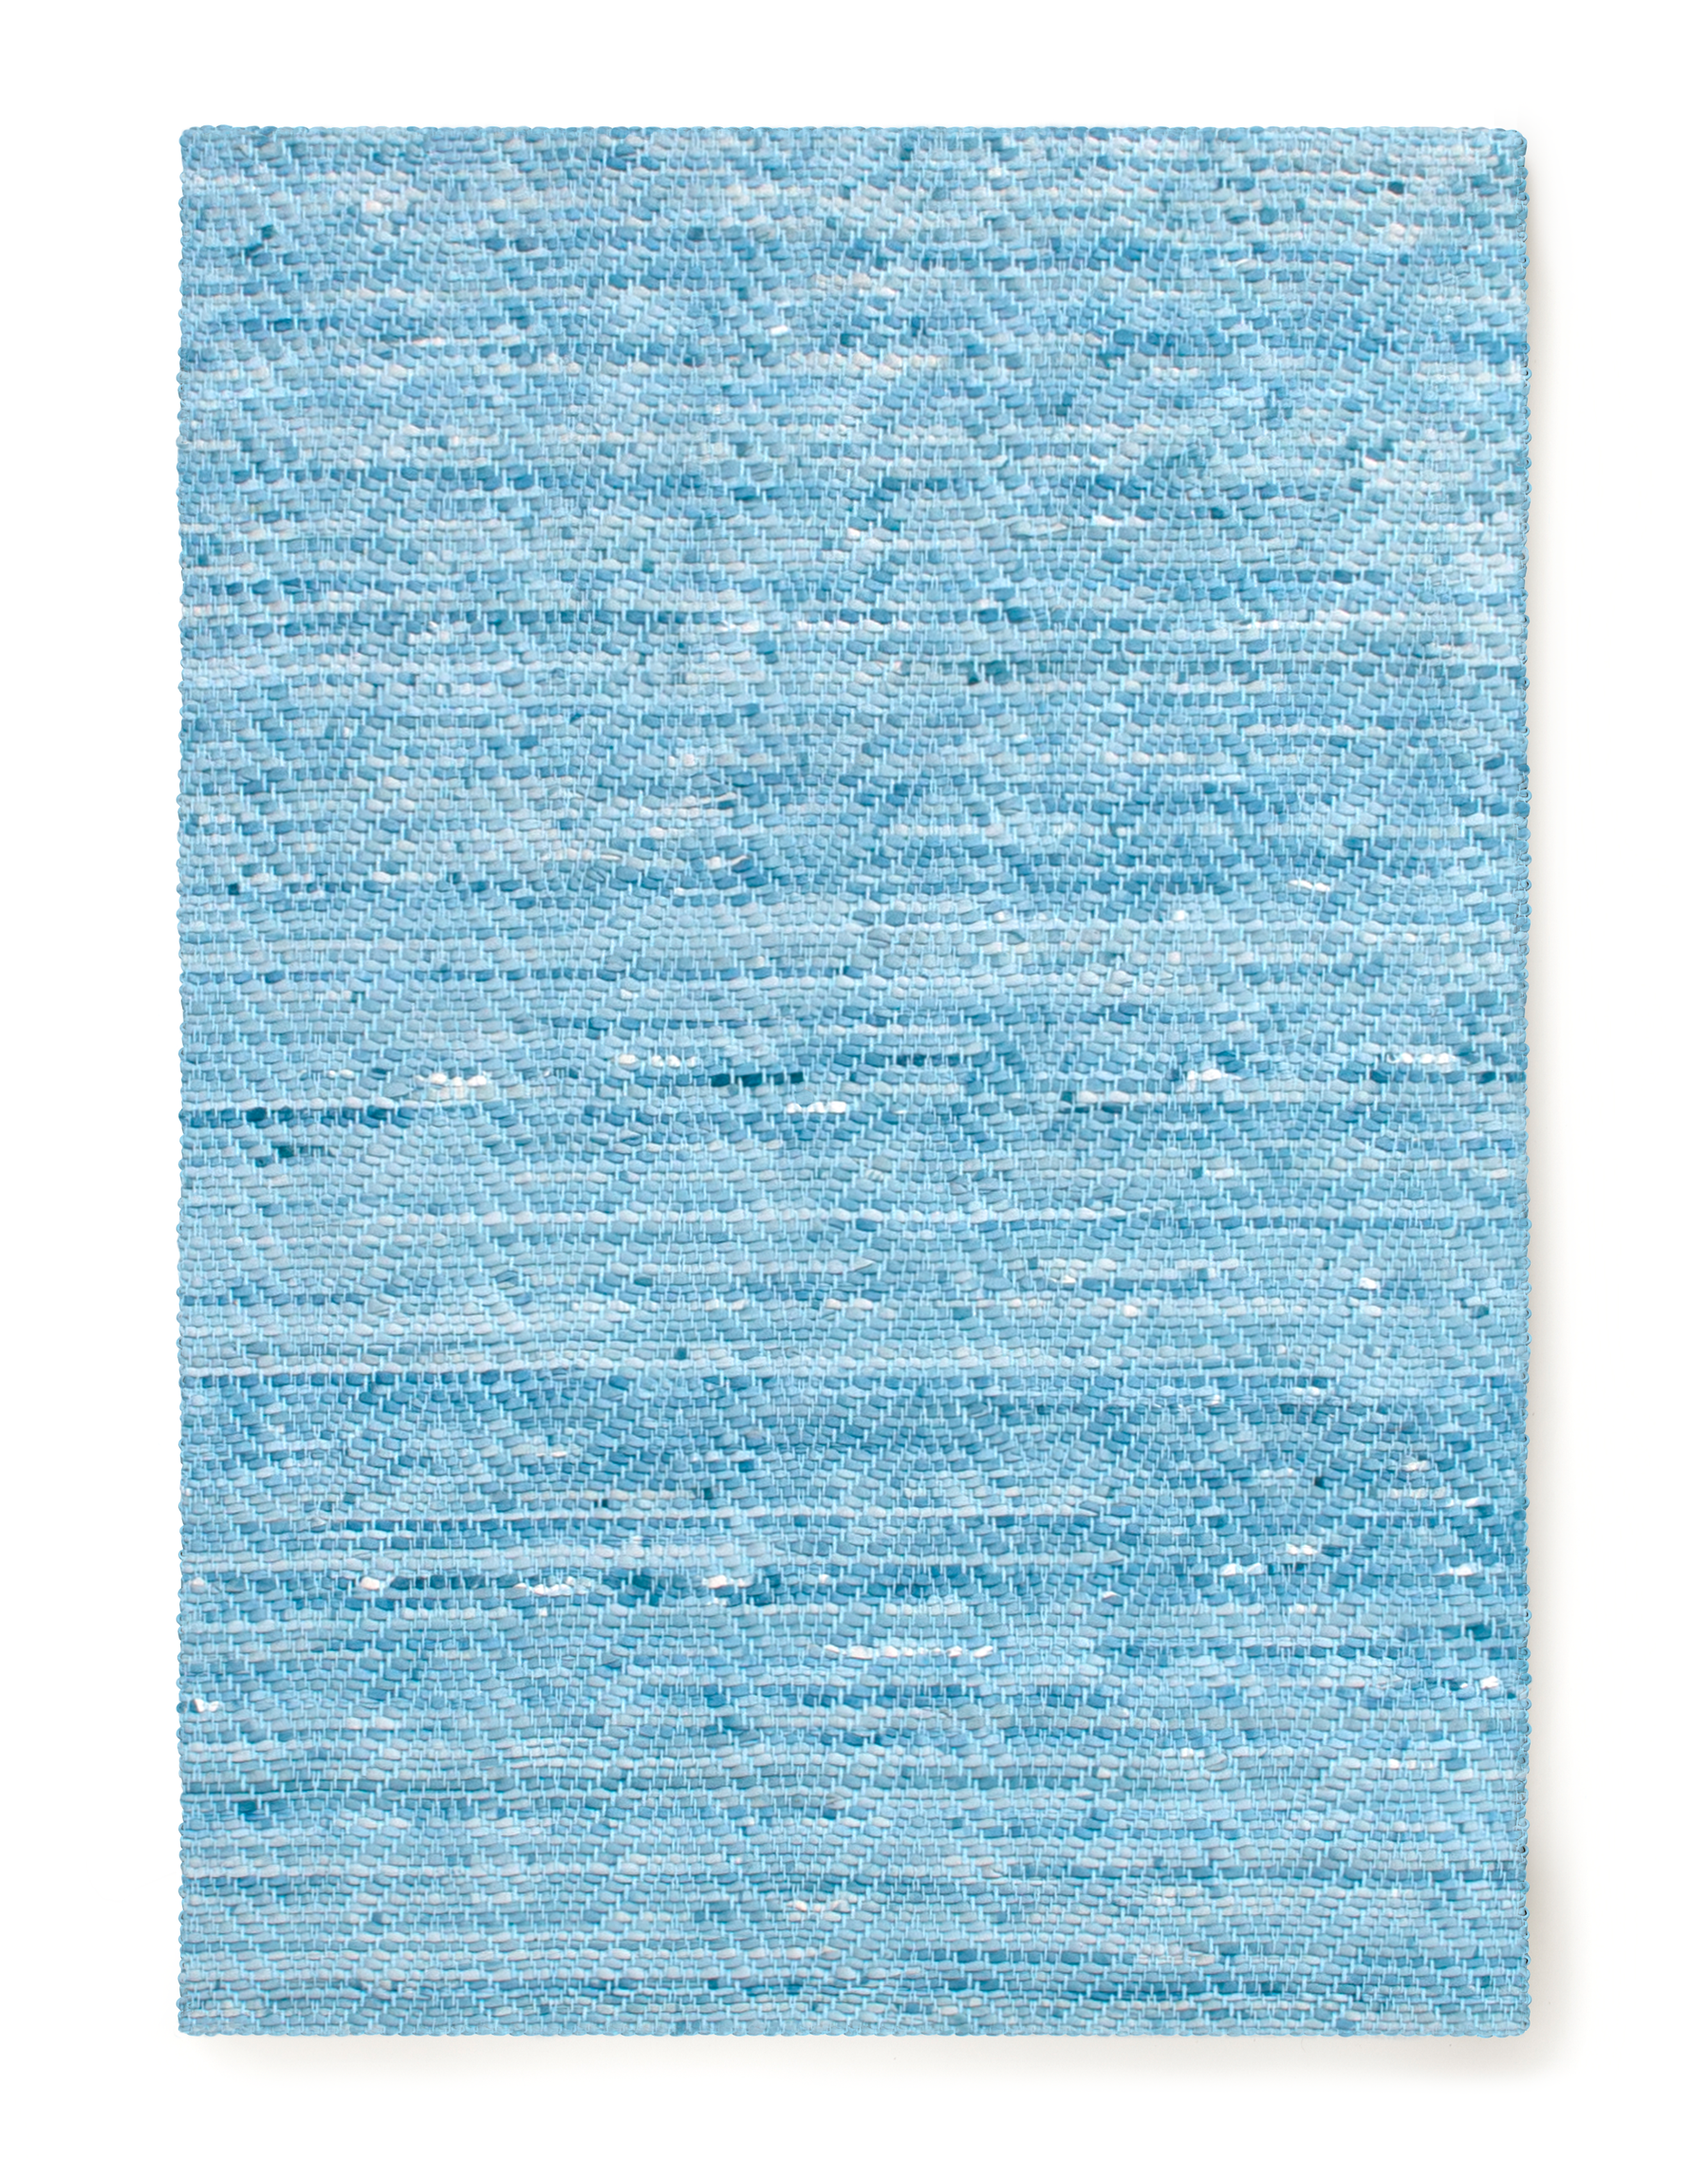 AVO_Woven-Leather-Rug_Selvage-Edge_Wave.png